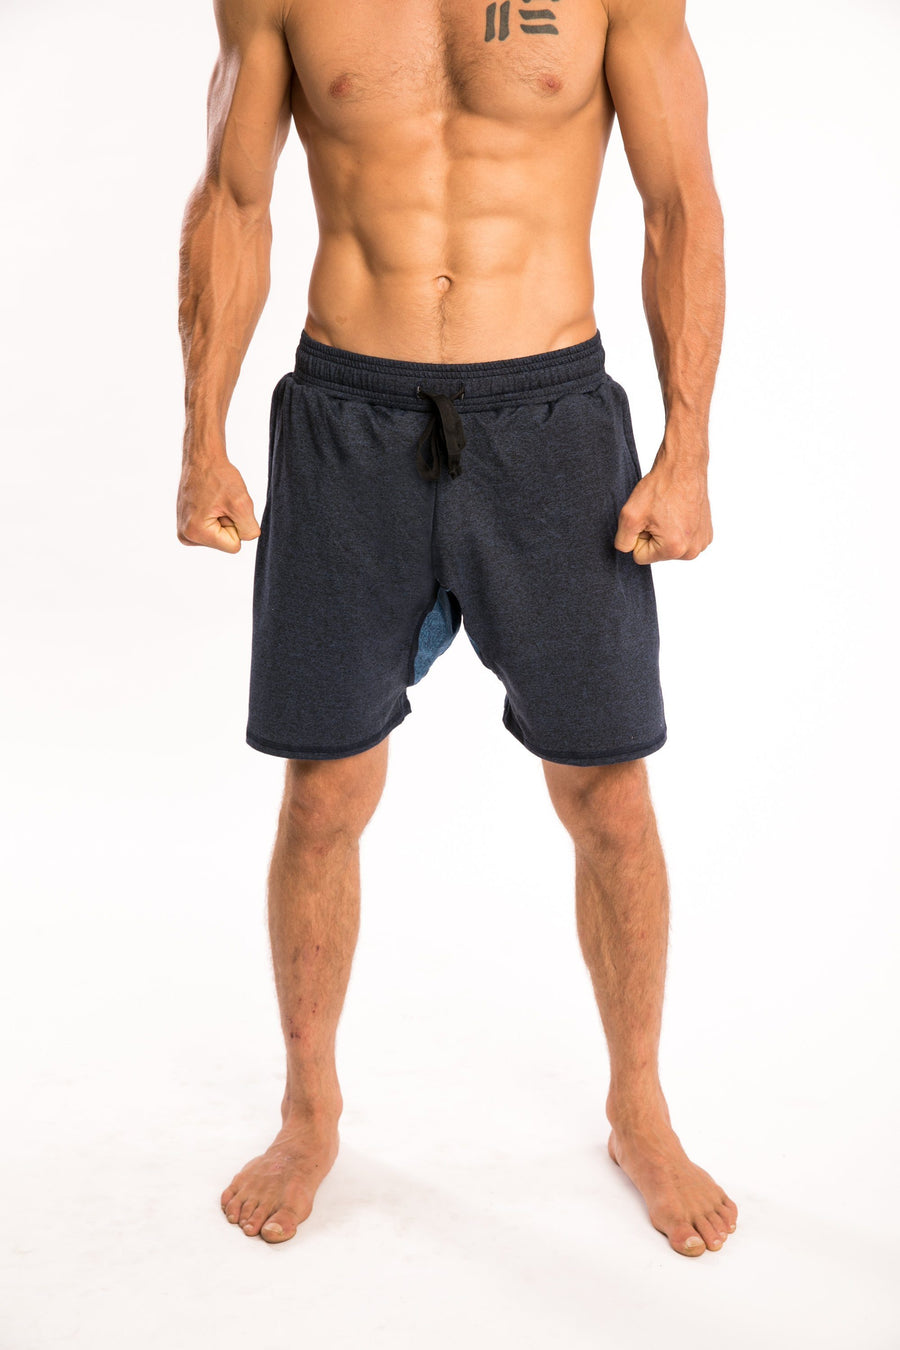 NAVY/COBALT Shorts-SHORTS-Pi Movement-XS-Pi Movement